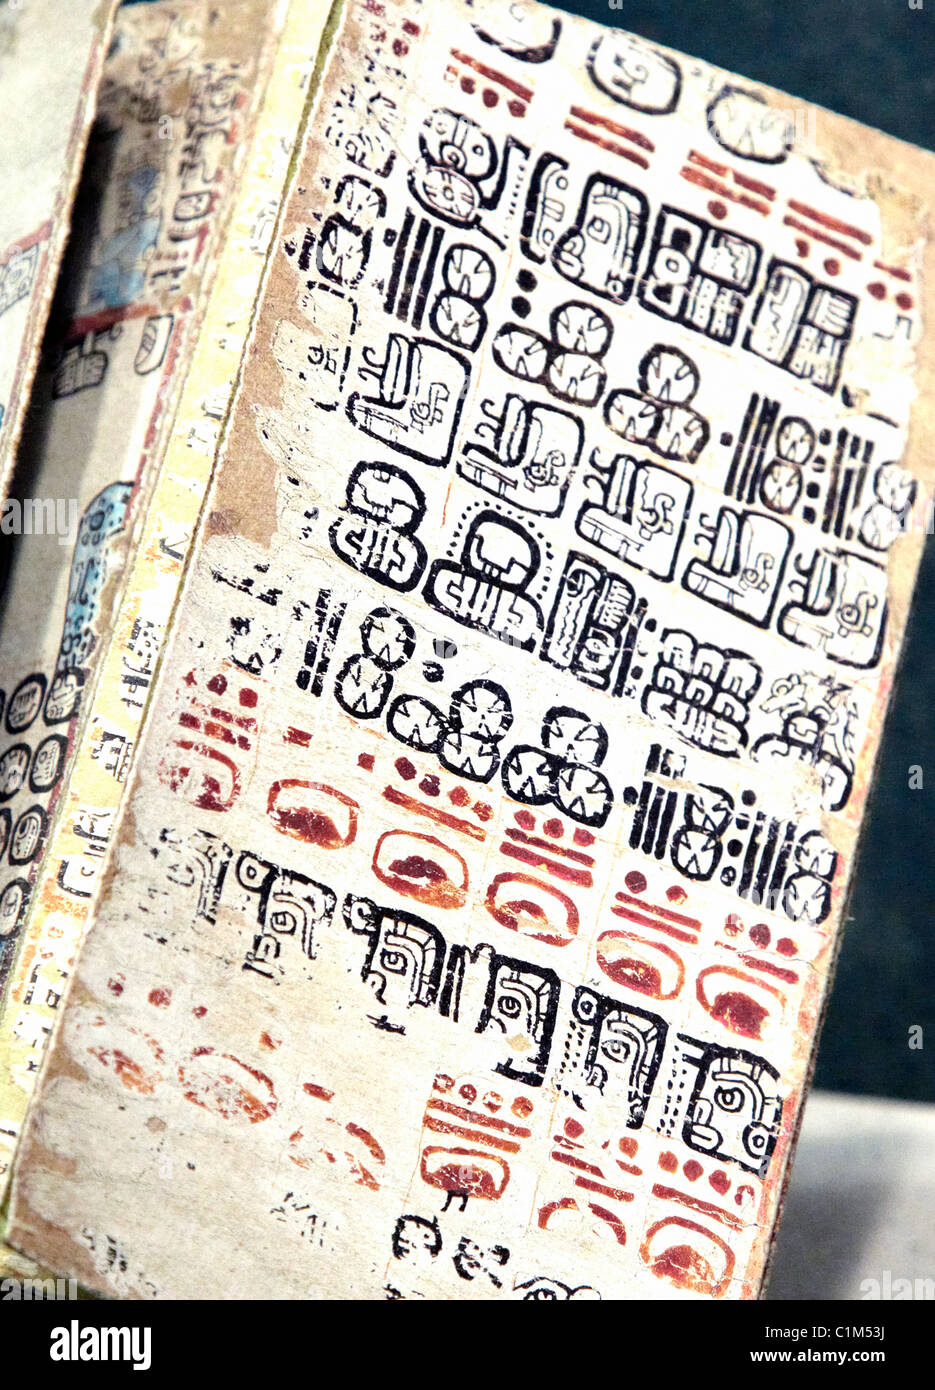 Mayan Writing Anthropological Museum Mexico City - Stock Image